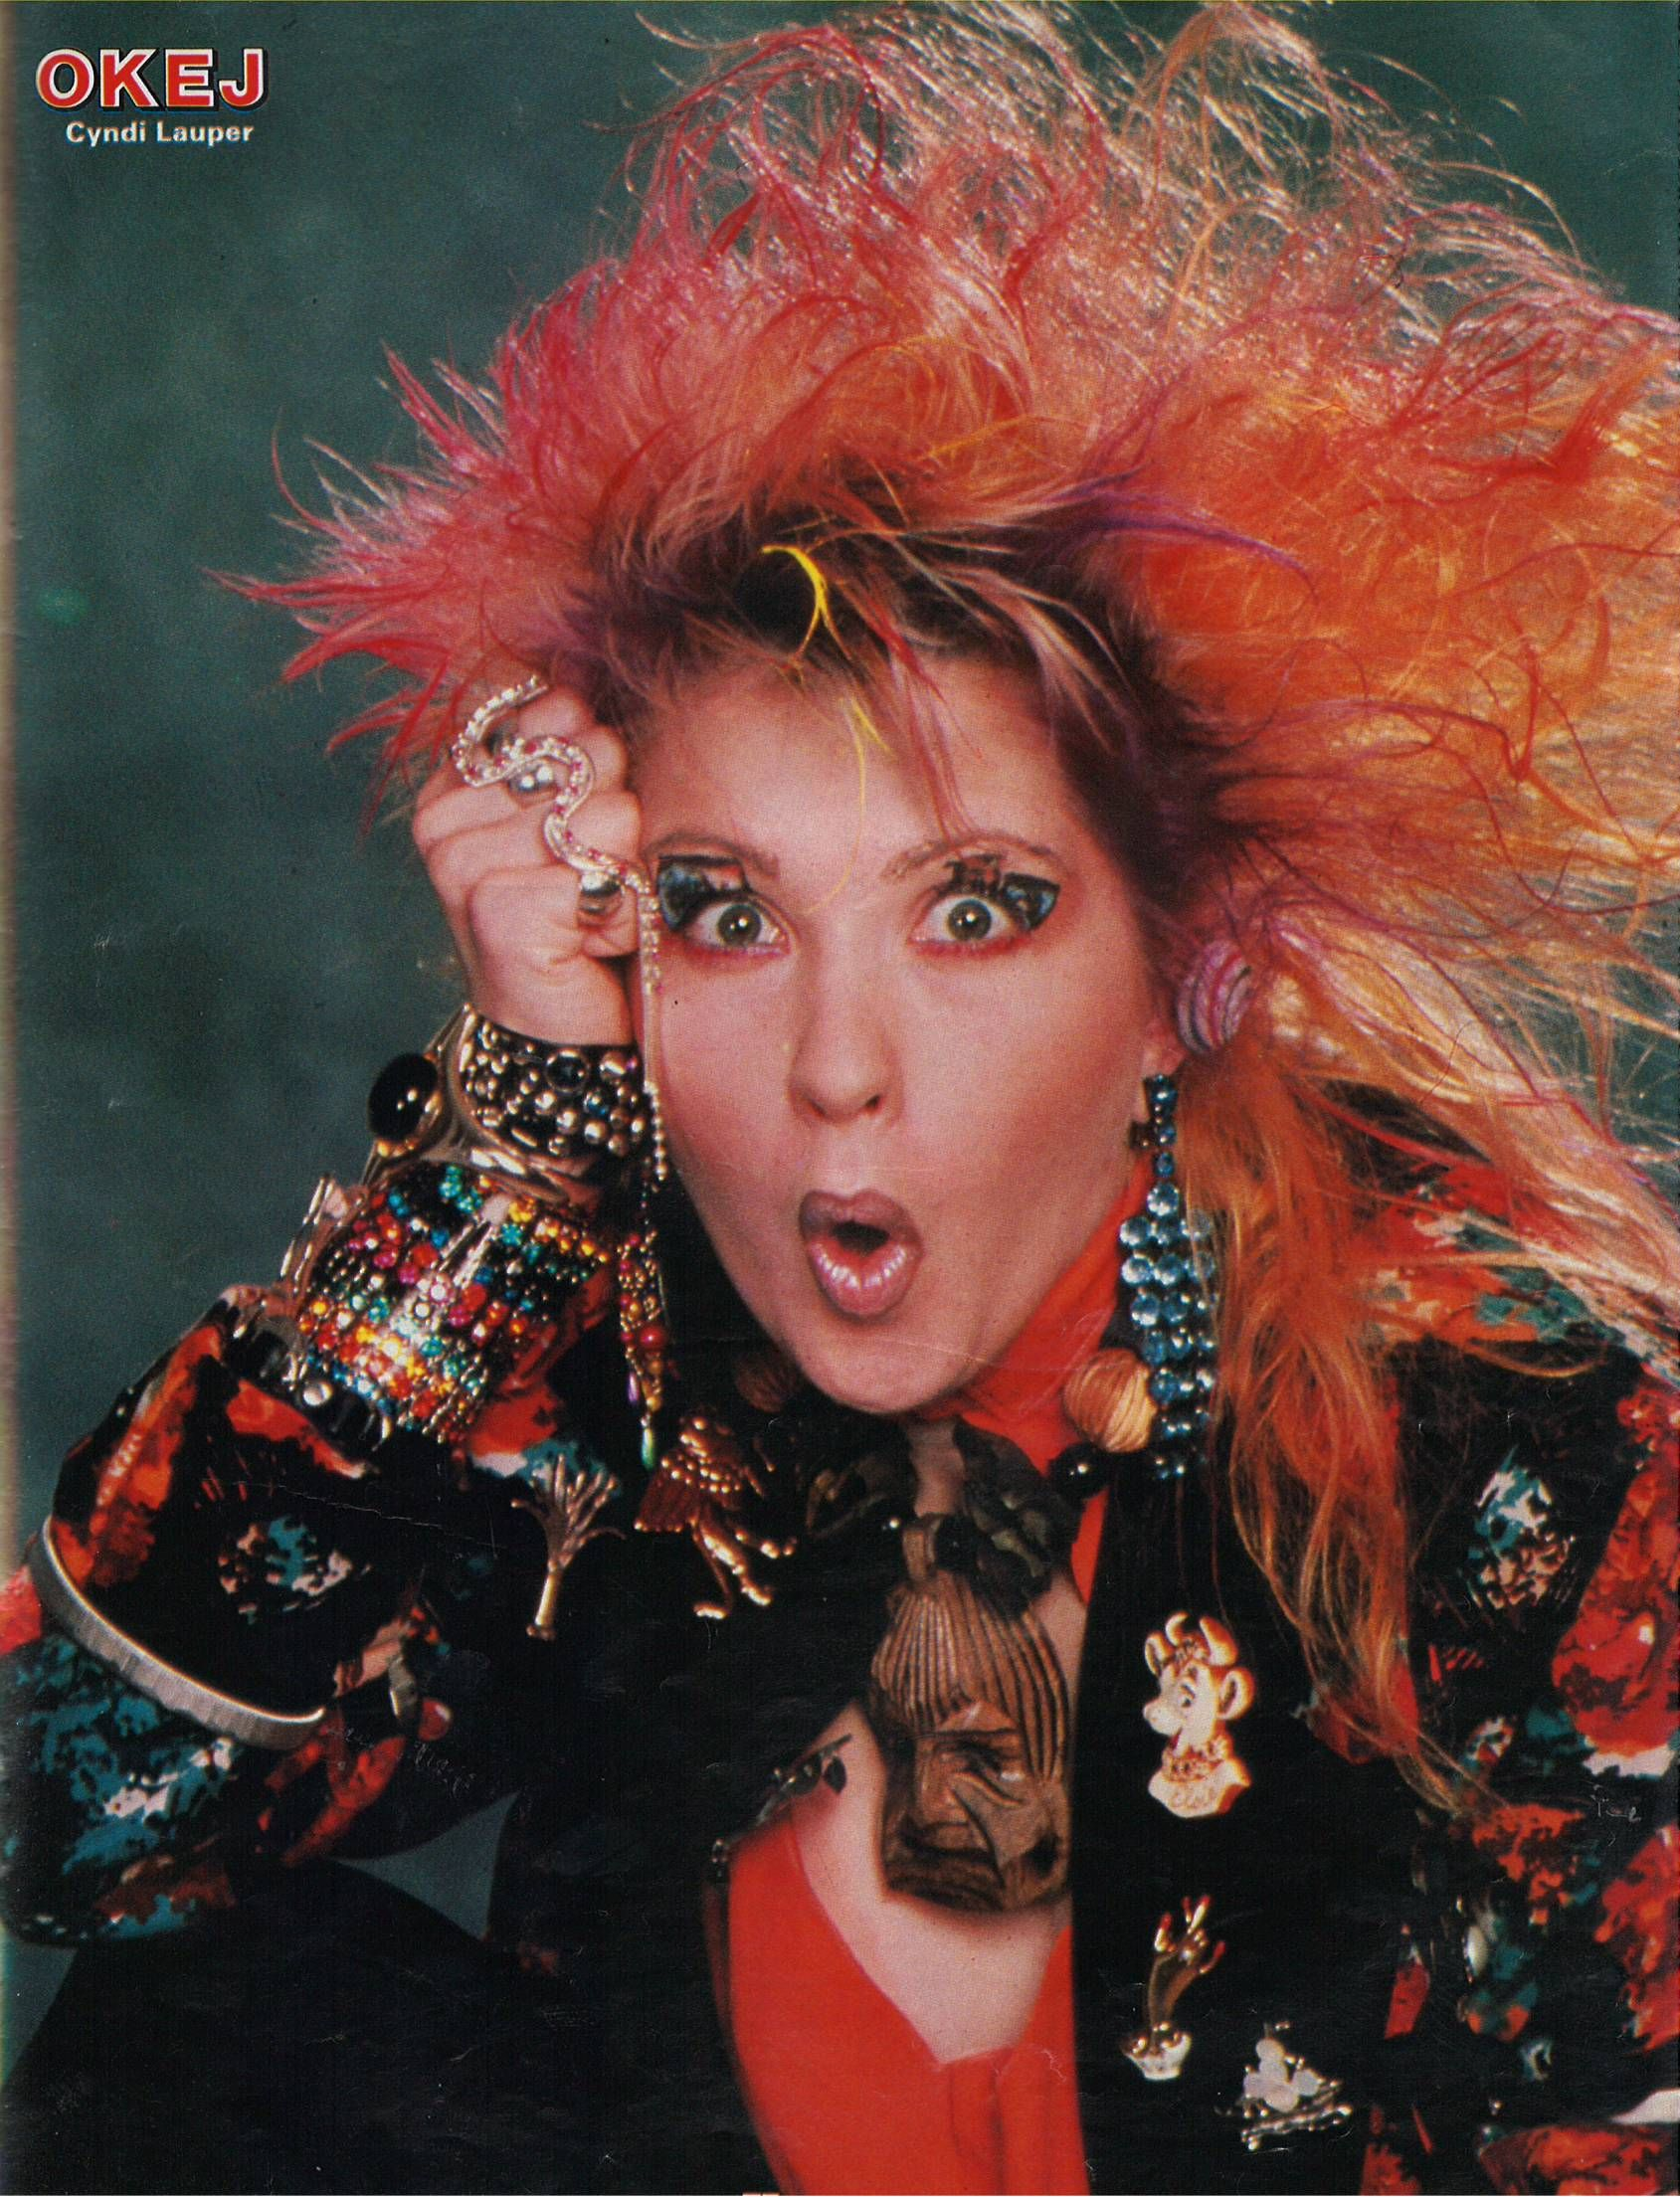 cyndi lauper | ... cyndi lauper 1984 cyndi lauper we are ...